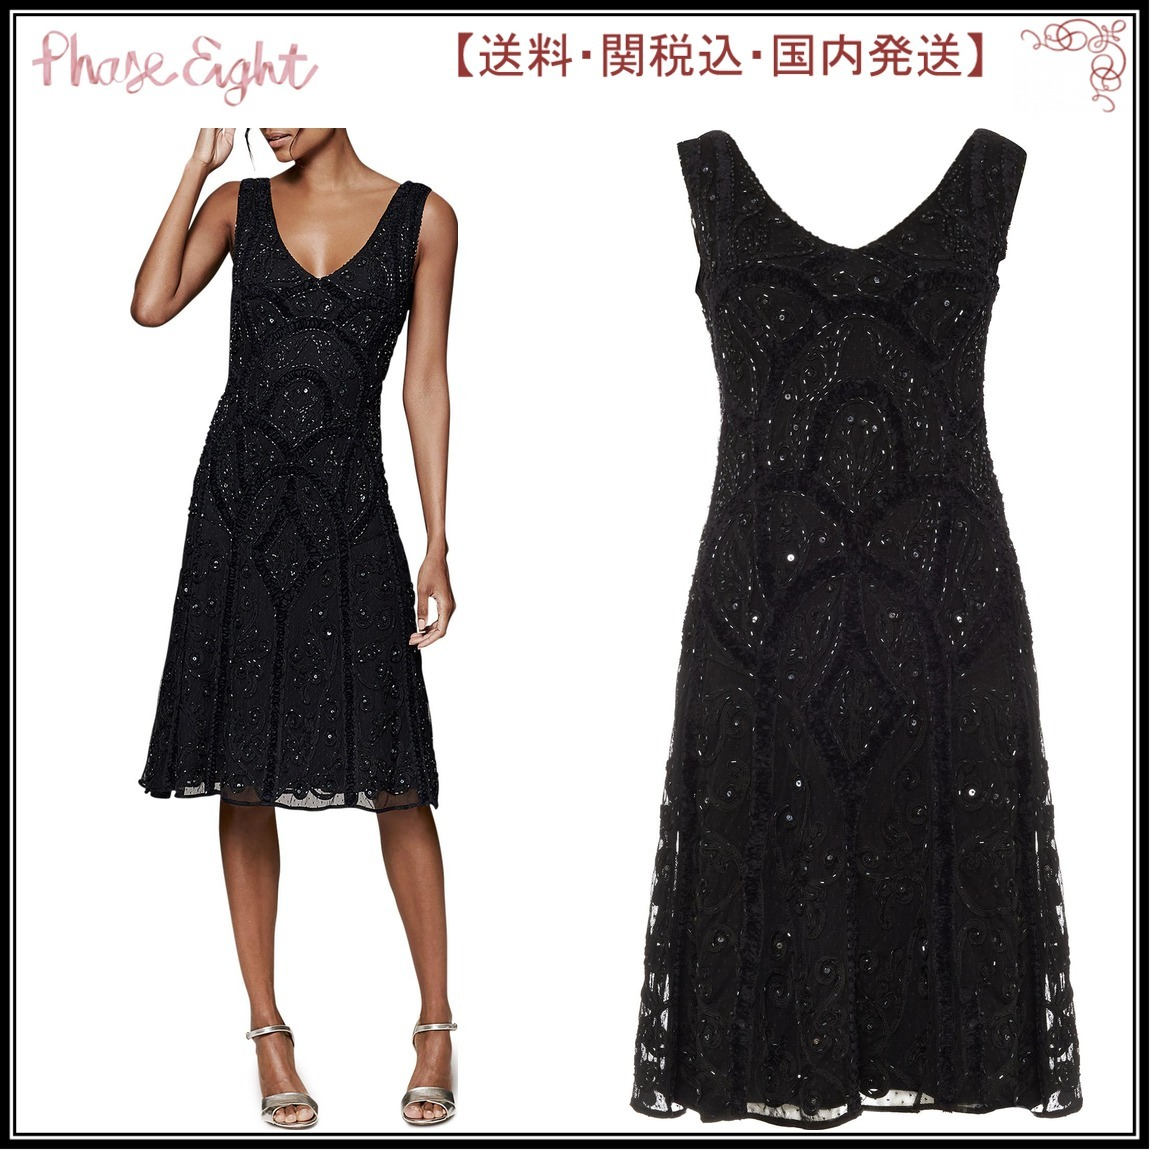 【関税込】PhaseEight ワンピース☆Elspeth Dress